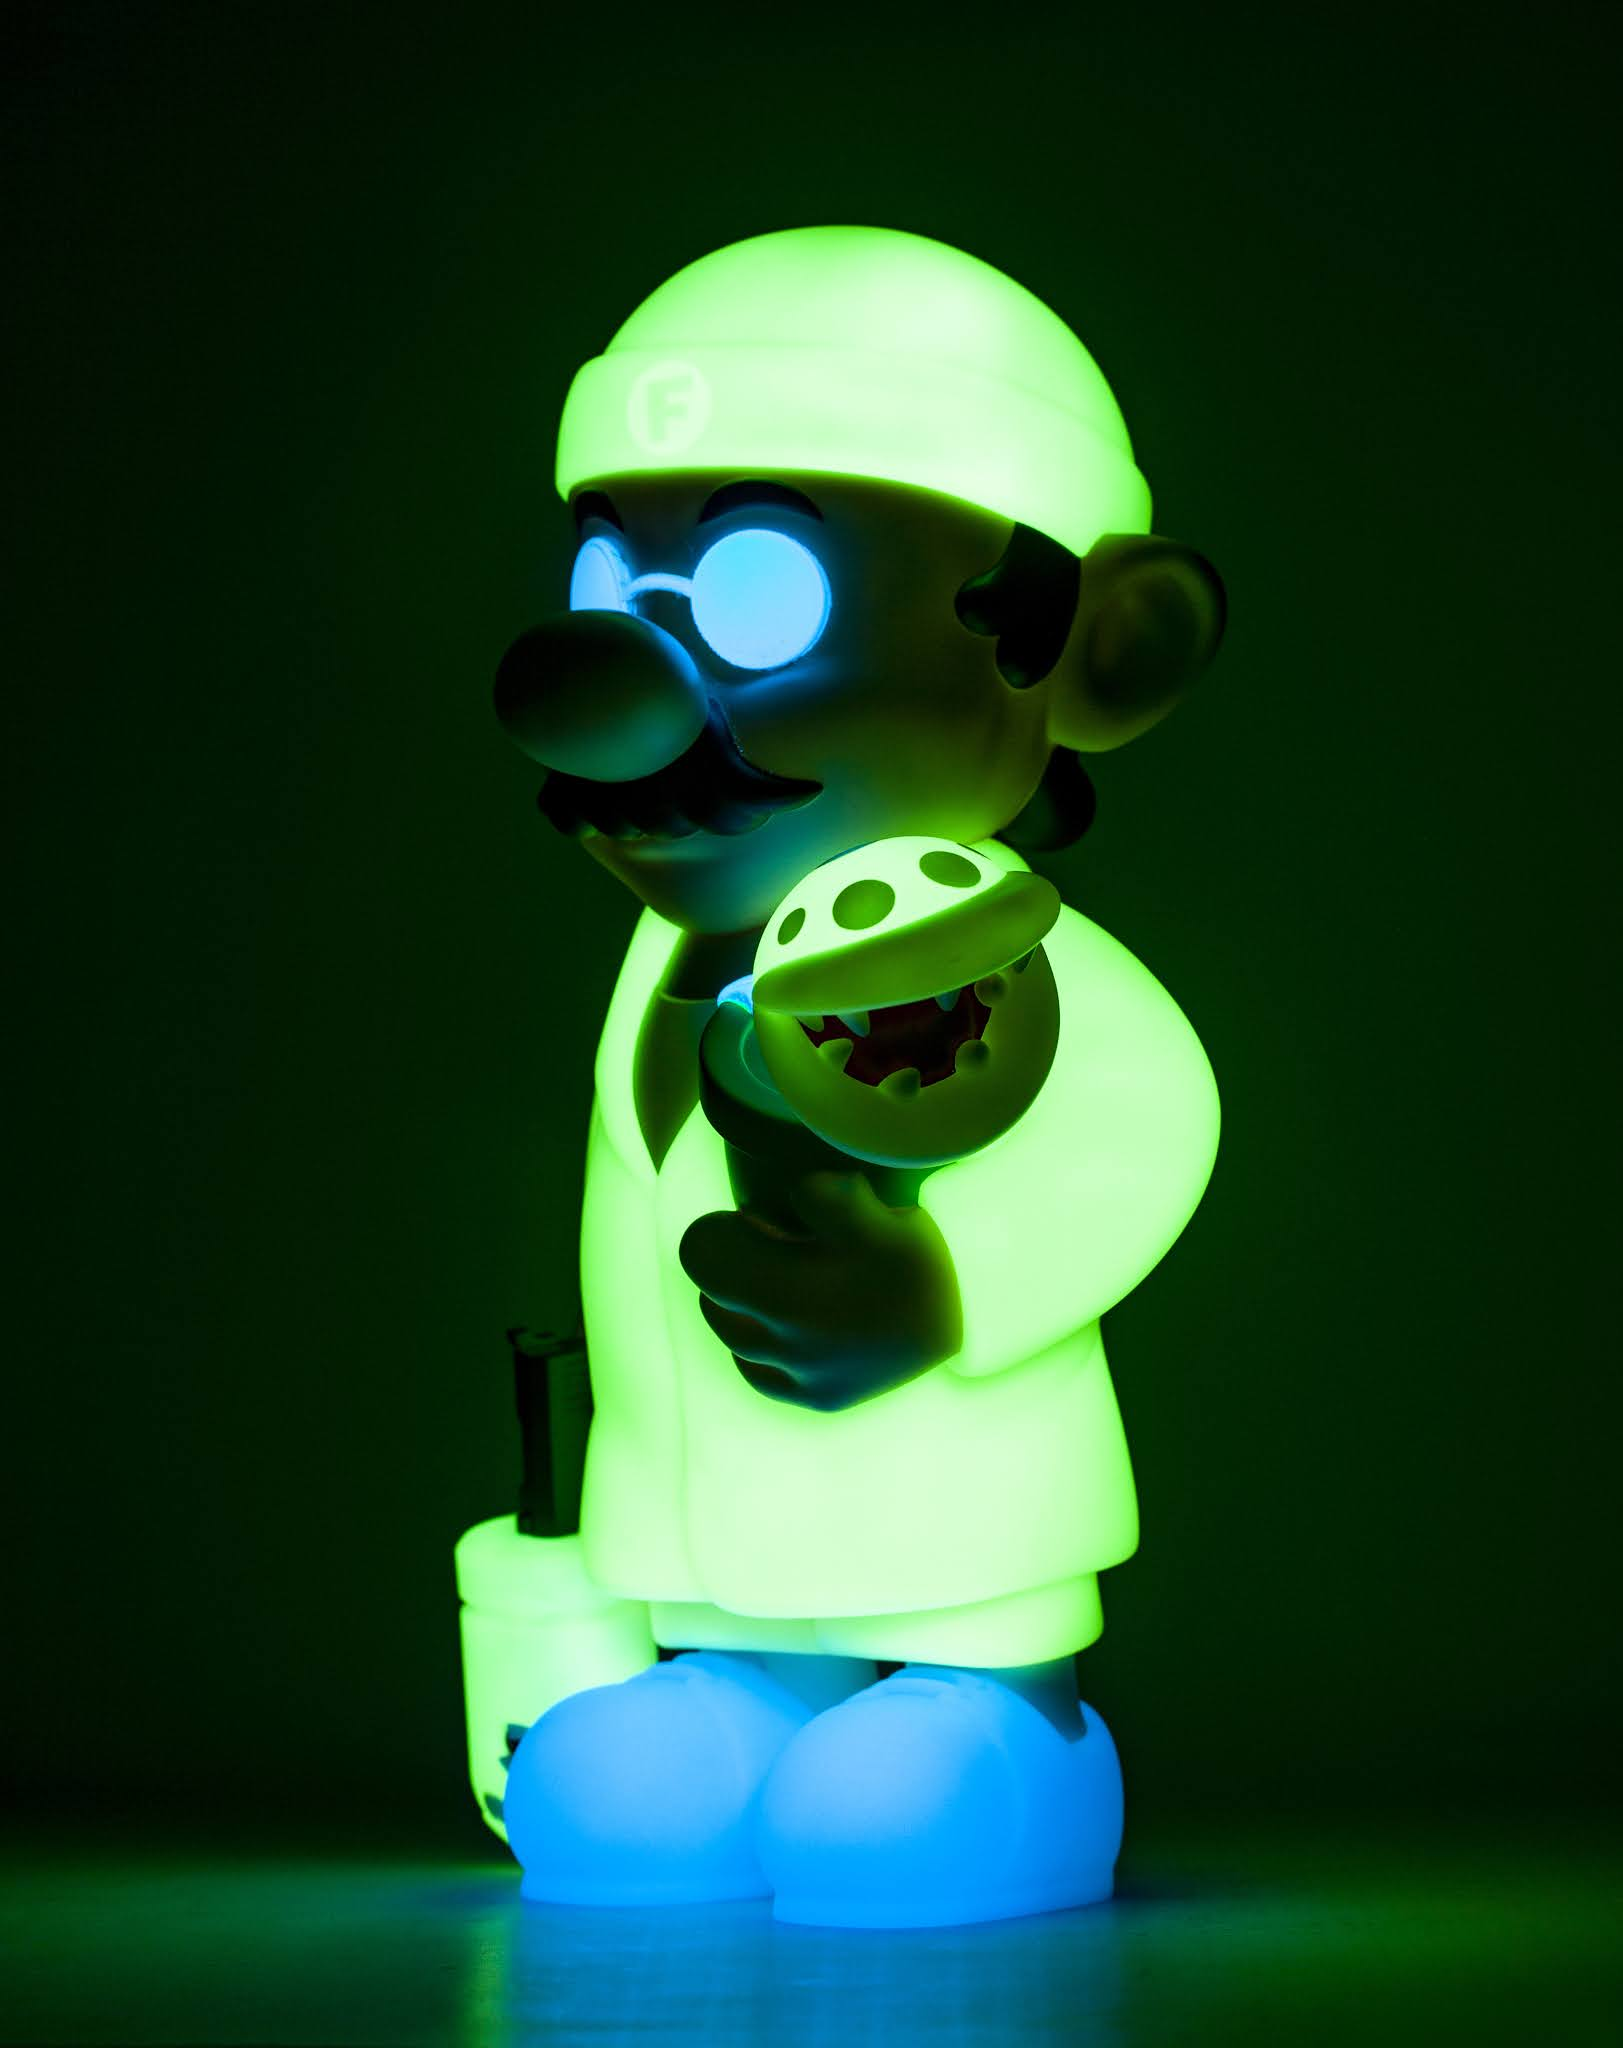 A side view of GID star power up super professional glowing